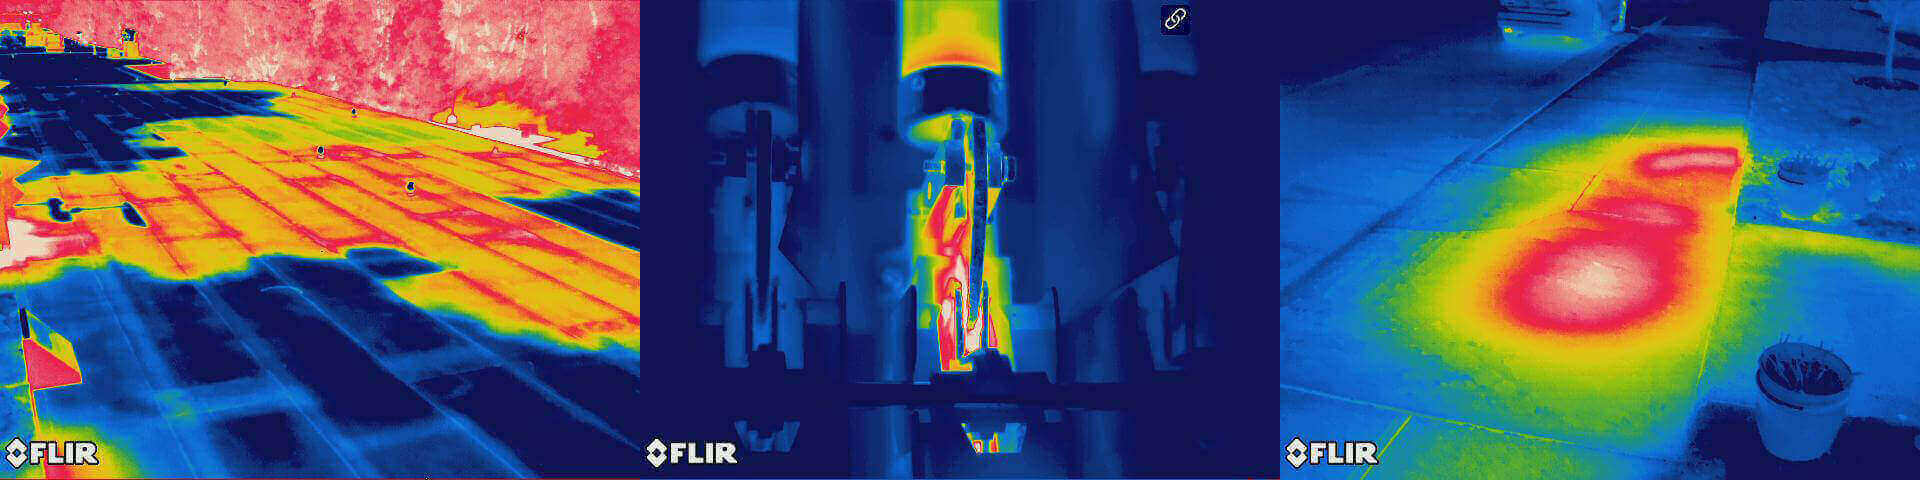 infrared images header 2 - Infrared Windows